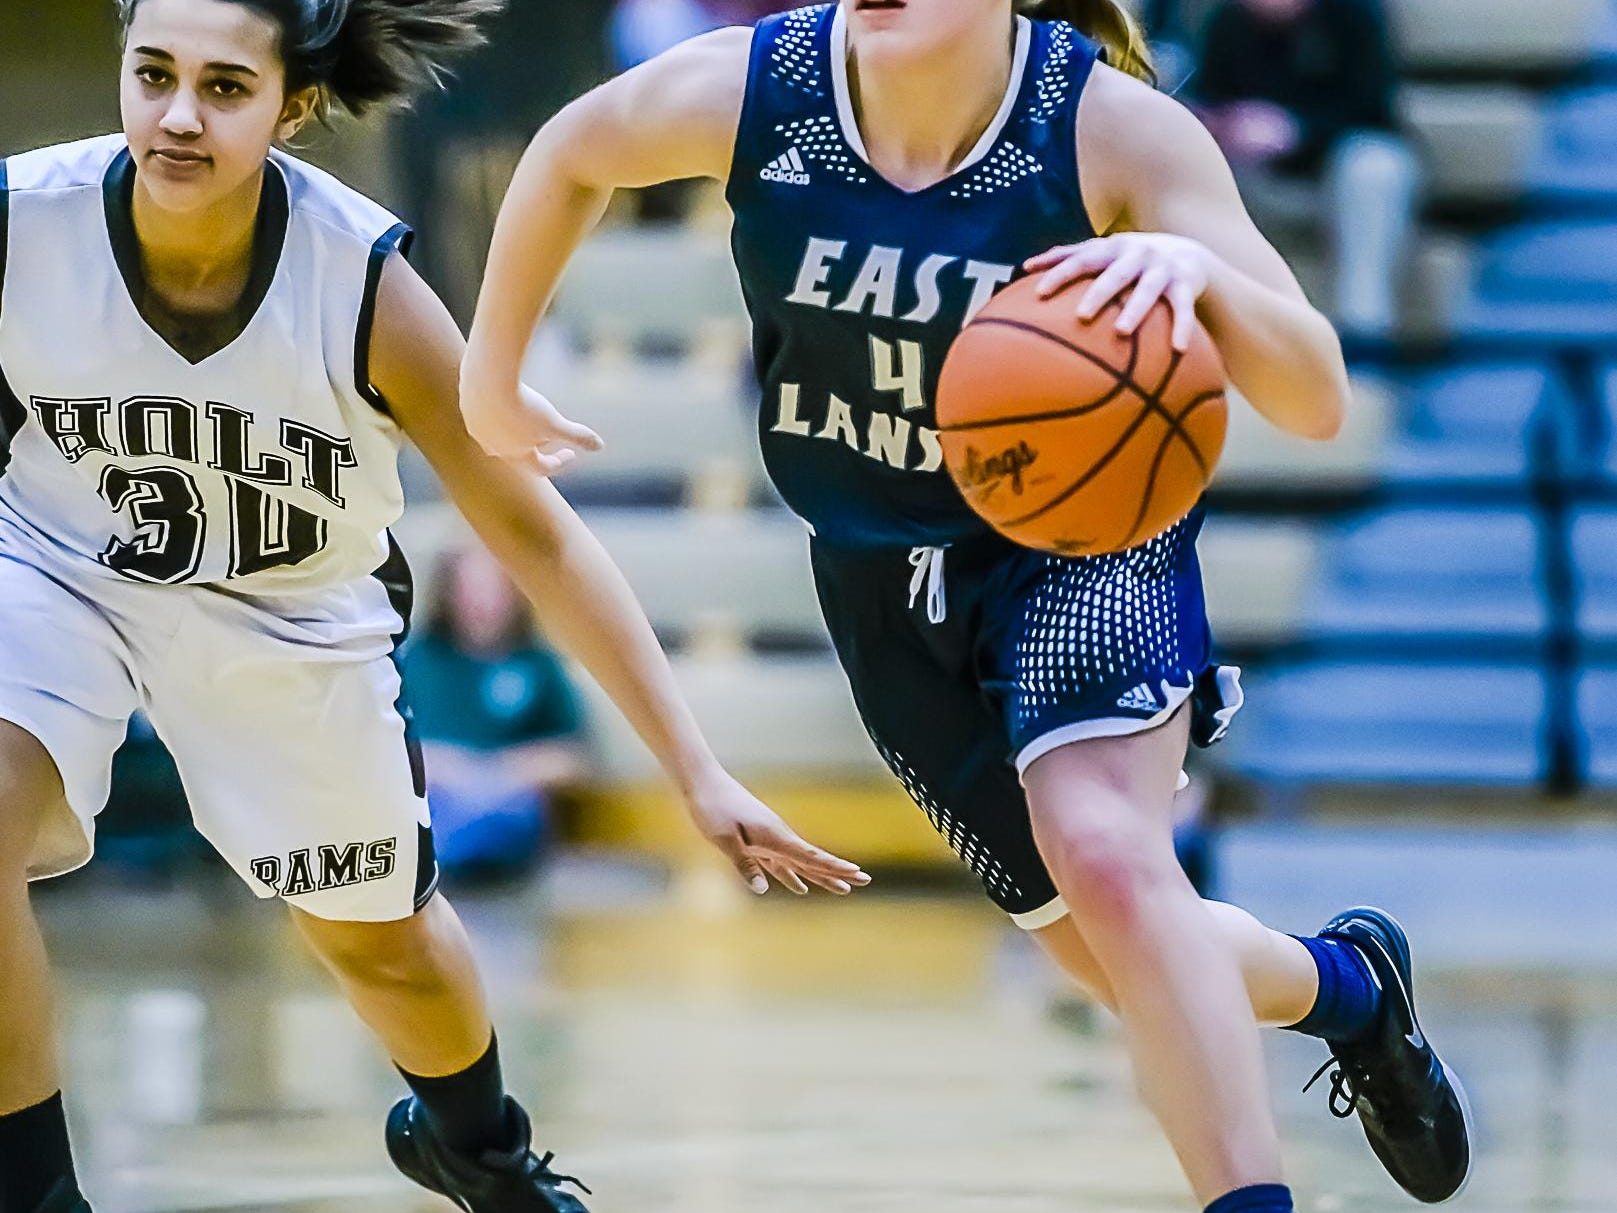 Taryn McCutcheon ,right, of East Lansing drives past Avi'onna Huxstable of Holt during their game Friday January 15, 2016 in Holt. KEVIN W. FOWLER PHOTO